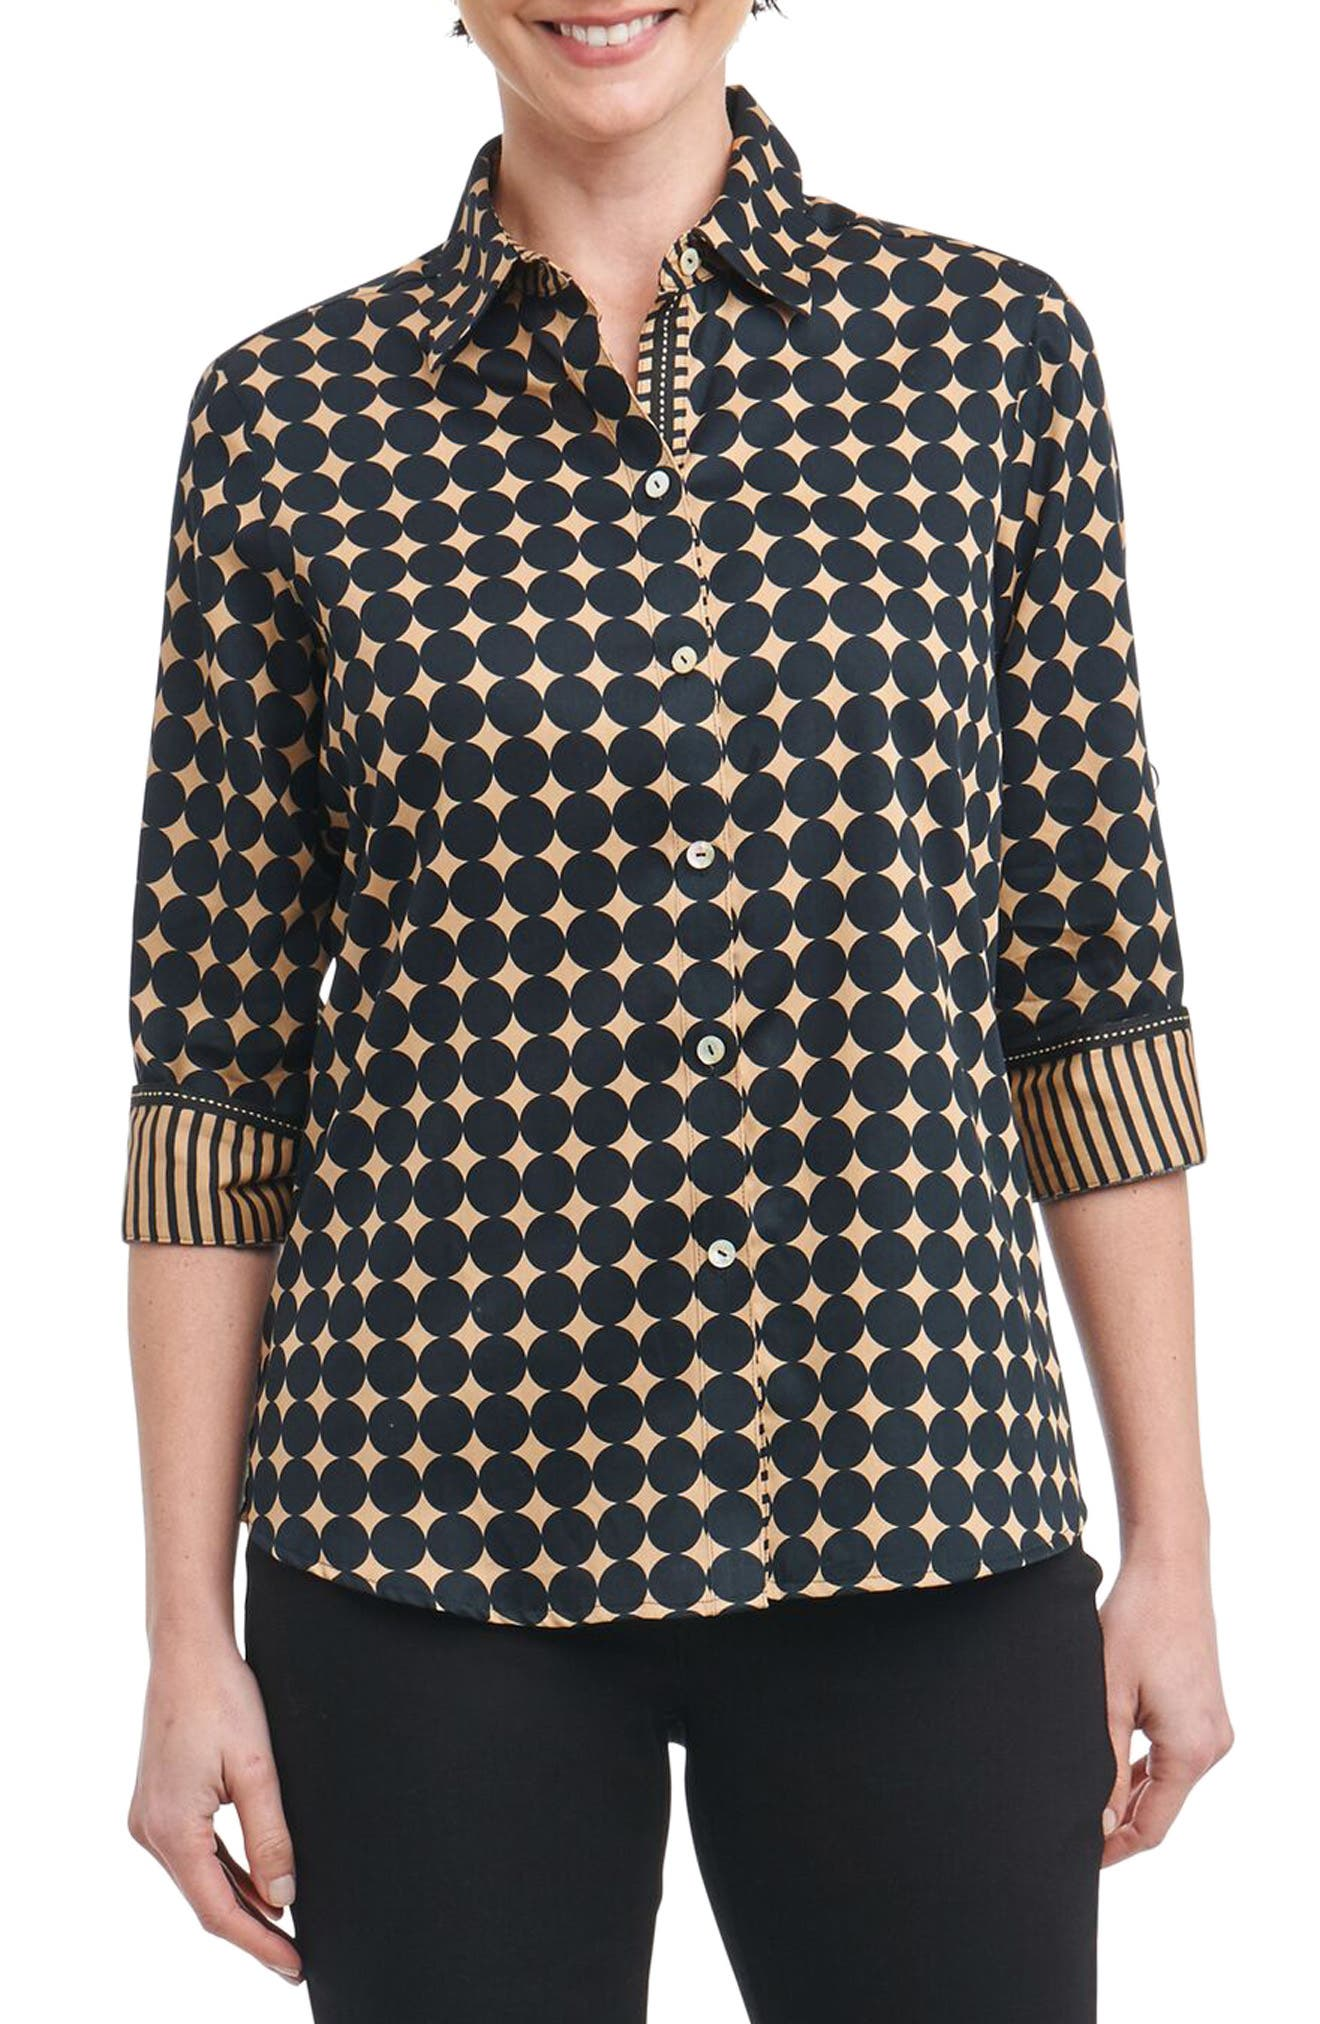 Foxcroft Ava Non-Iron Dot Print Cotton Shirt (Regular & Petite)